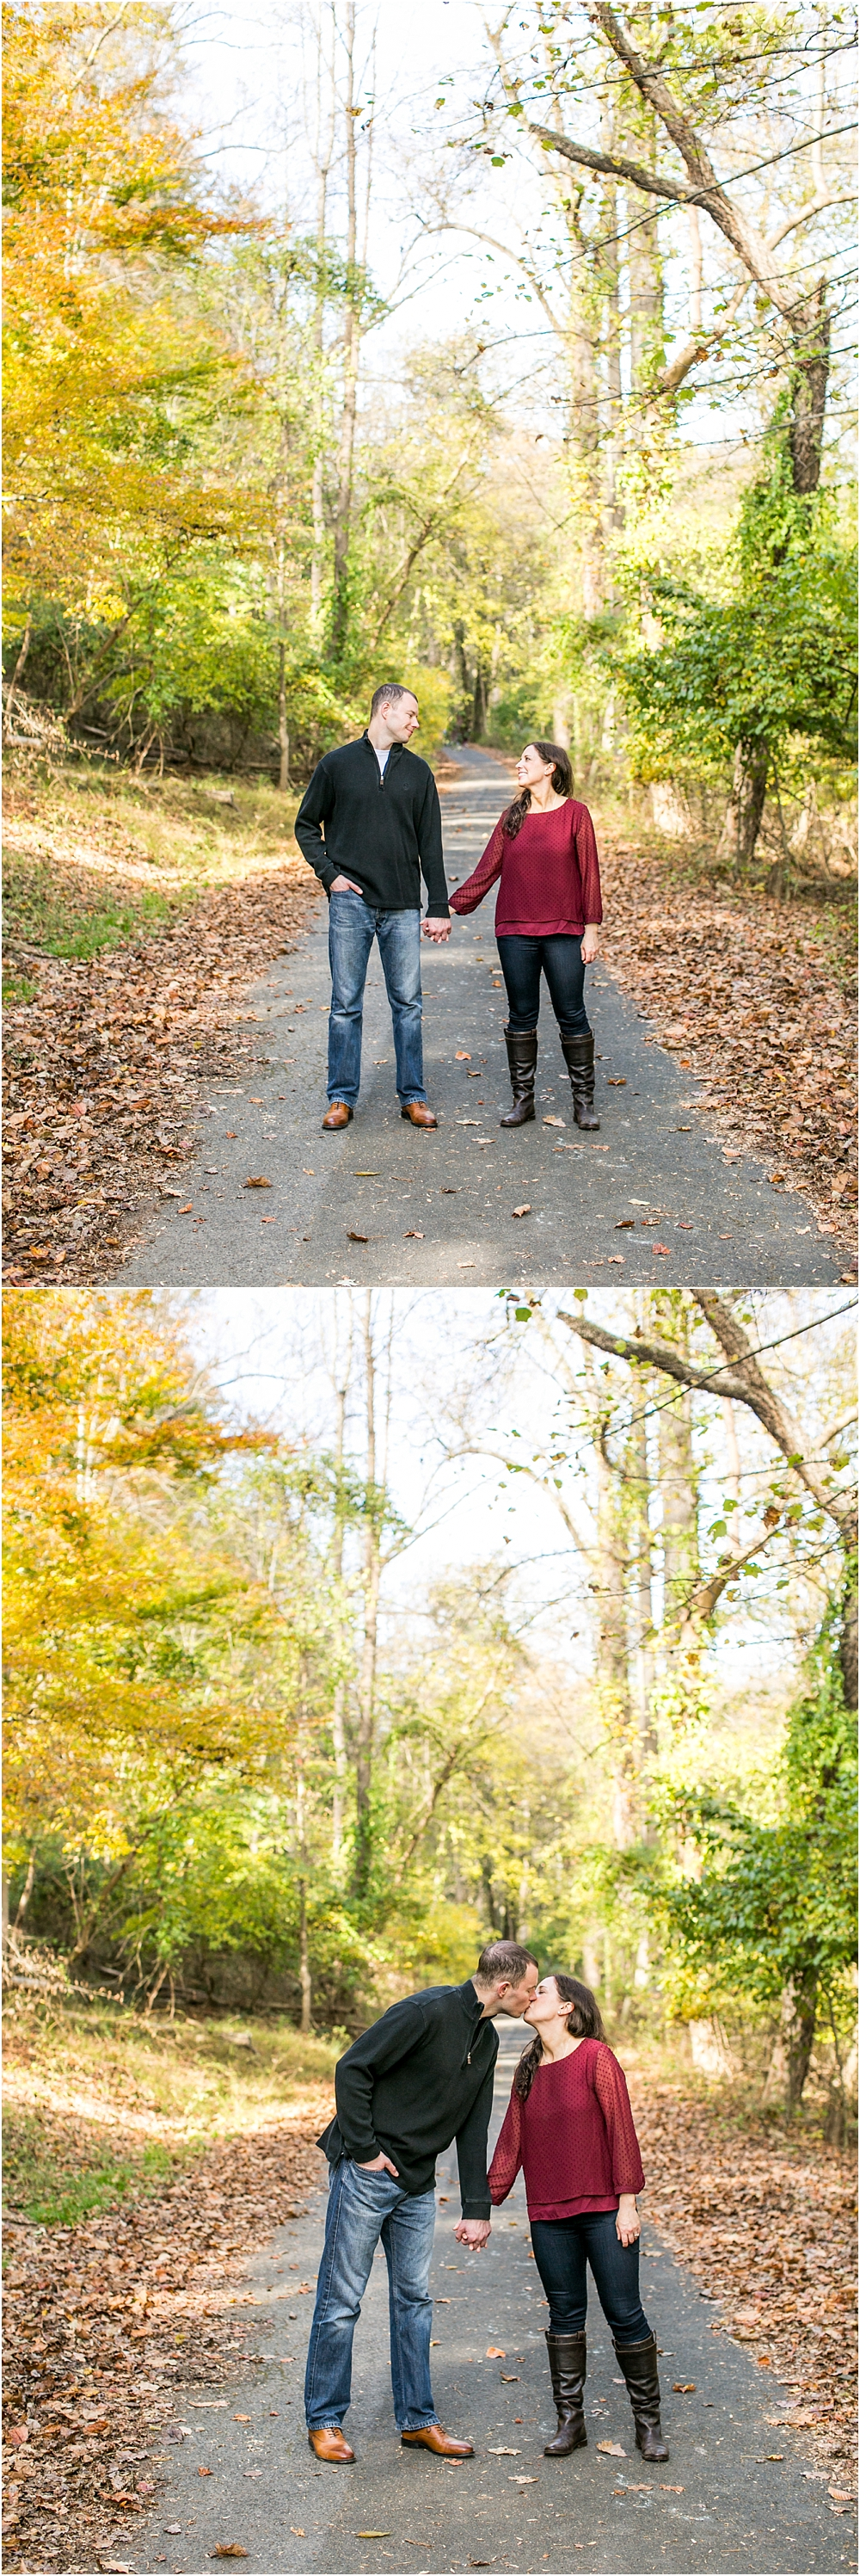 emily chad patapsco park engagement session living radiant photography photos color-10_0021.jpg